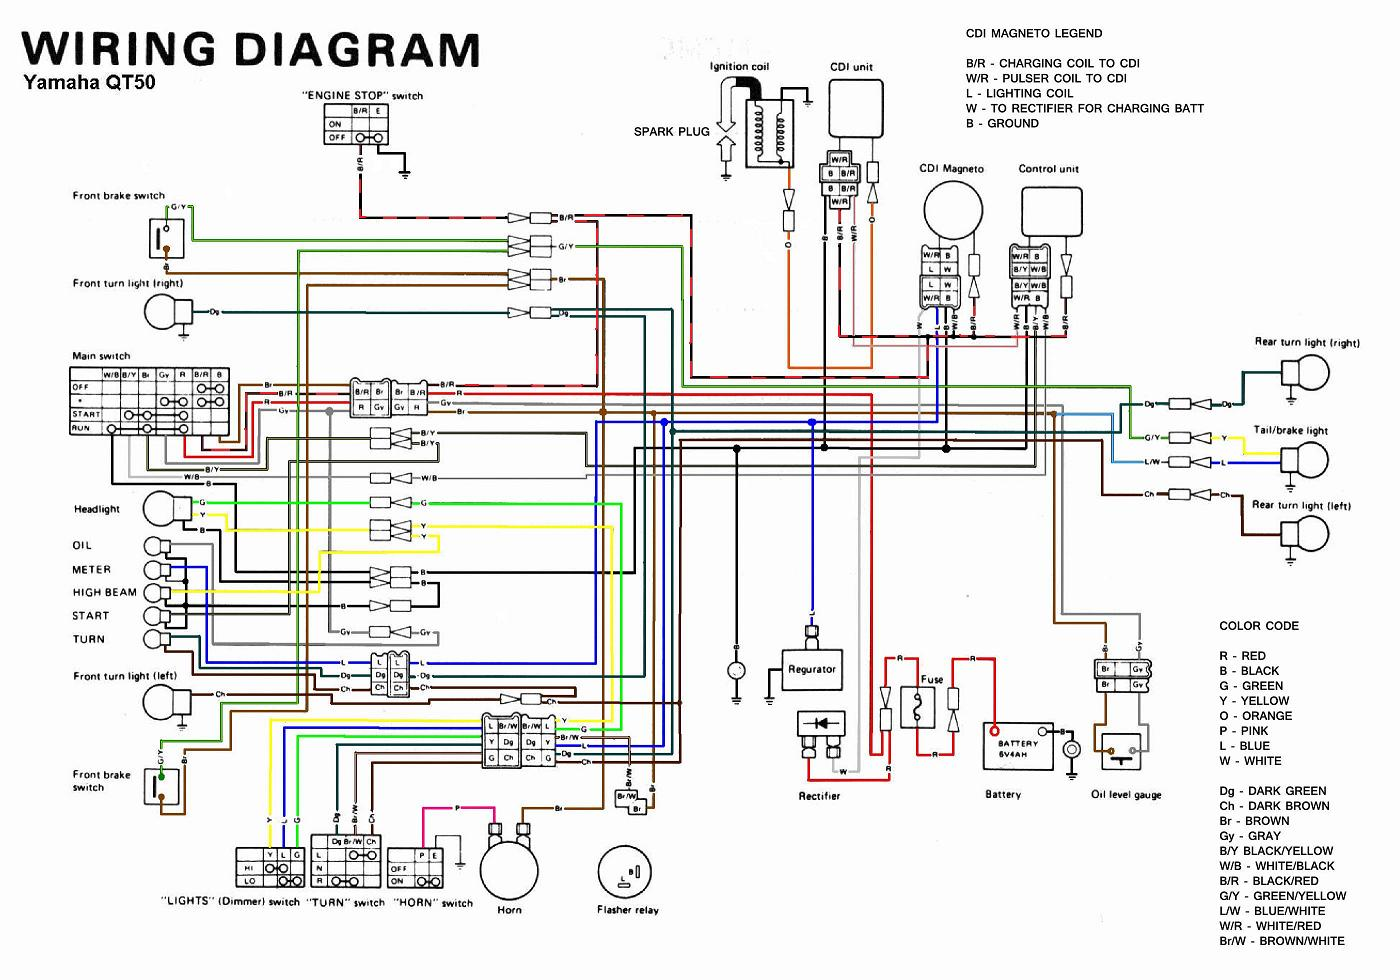 Yamaha Qt50 Wiring Diagram  U2013 Yamaha Qt50 Luvin And Other